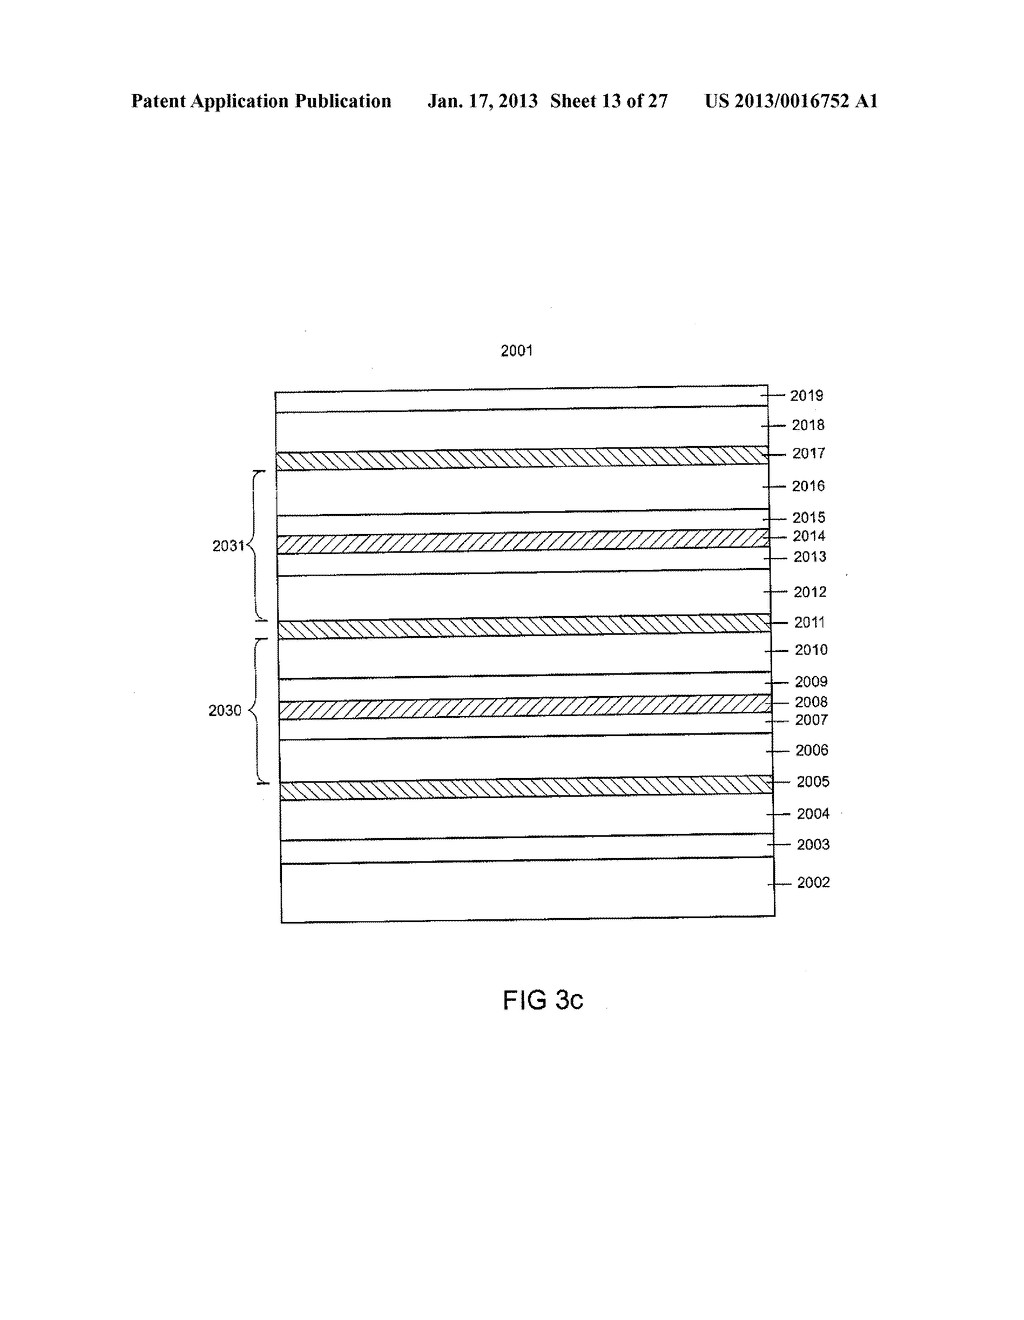 Laser Diode Assembly and Method for Producing a Laser Diode AssemblyAANM Lell; AlfredAACI Maxhutte-HaidhofAACO DEAAGP Lell; Alfred Maxhutte-Haidhof DEAANM Straussburg; MartinAACI DonaustaufAACO DEAAGP Straussburg; Martin Donaustauf DE - diagram, schematic, and image 14